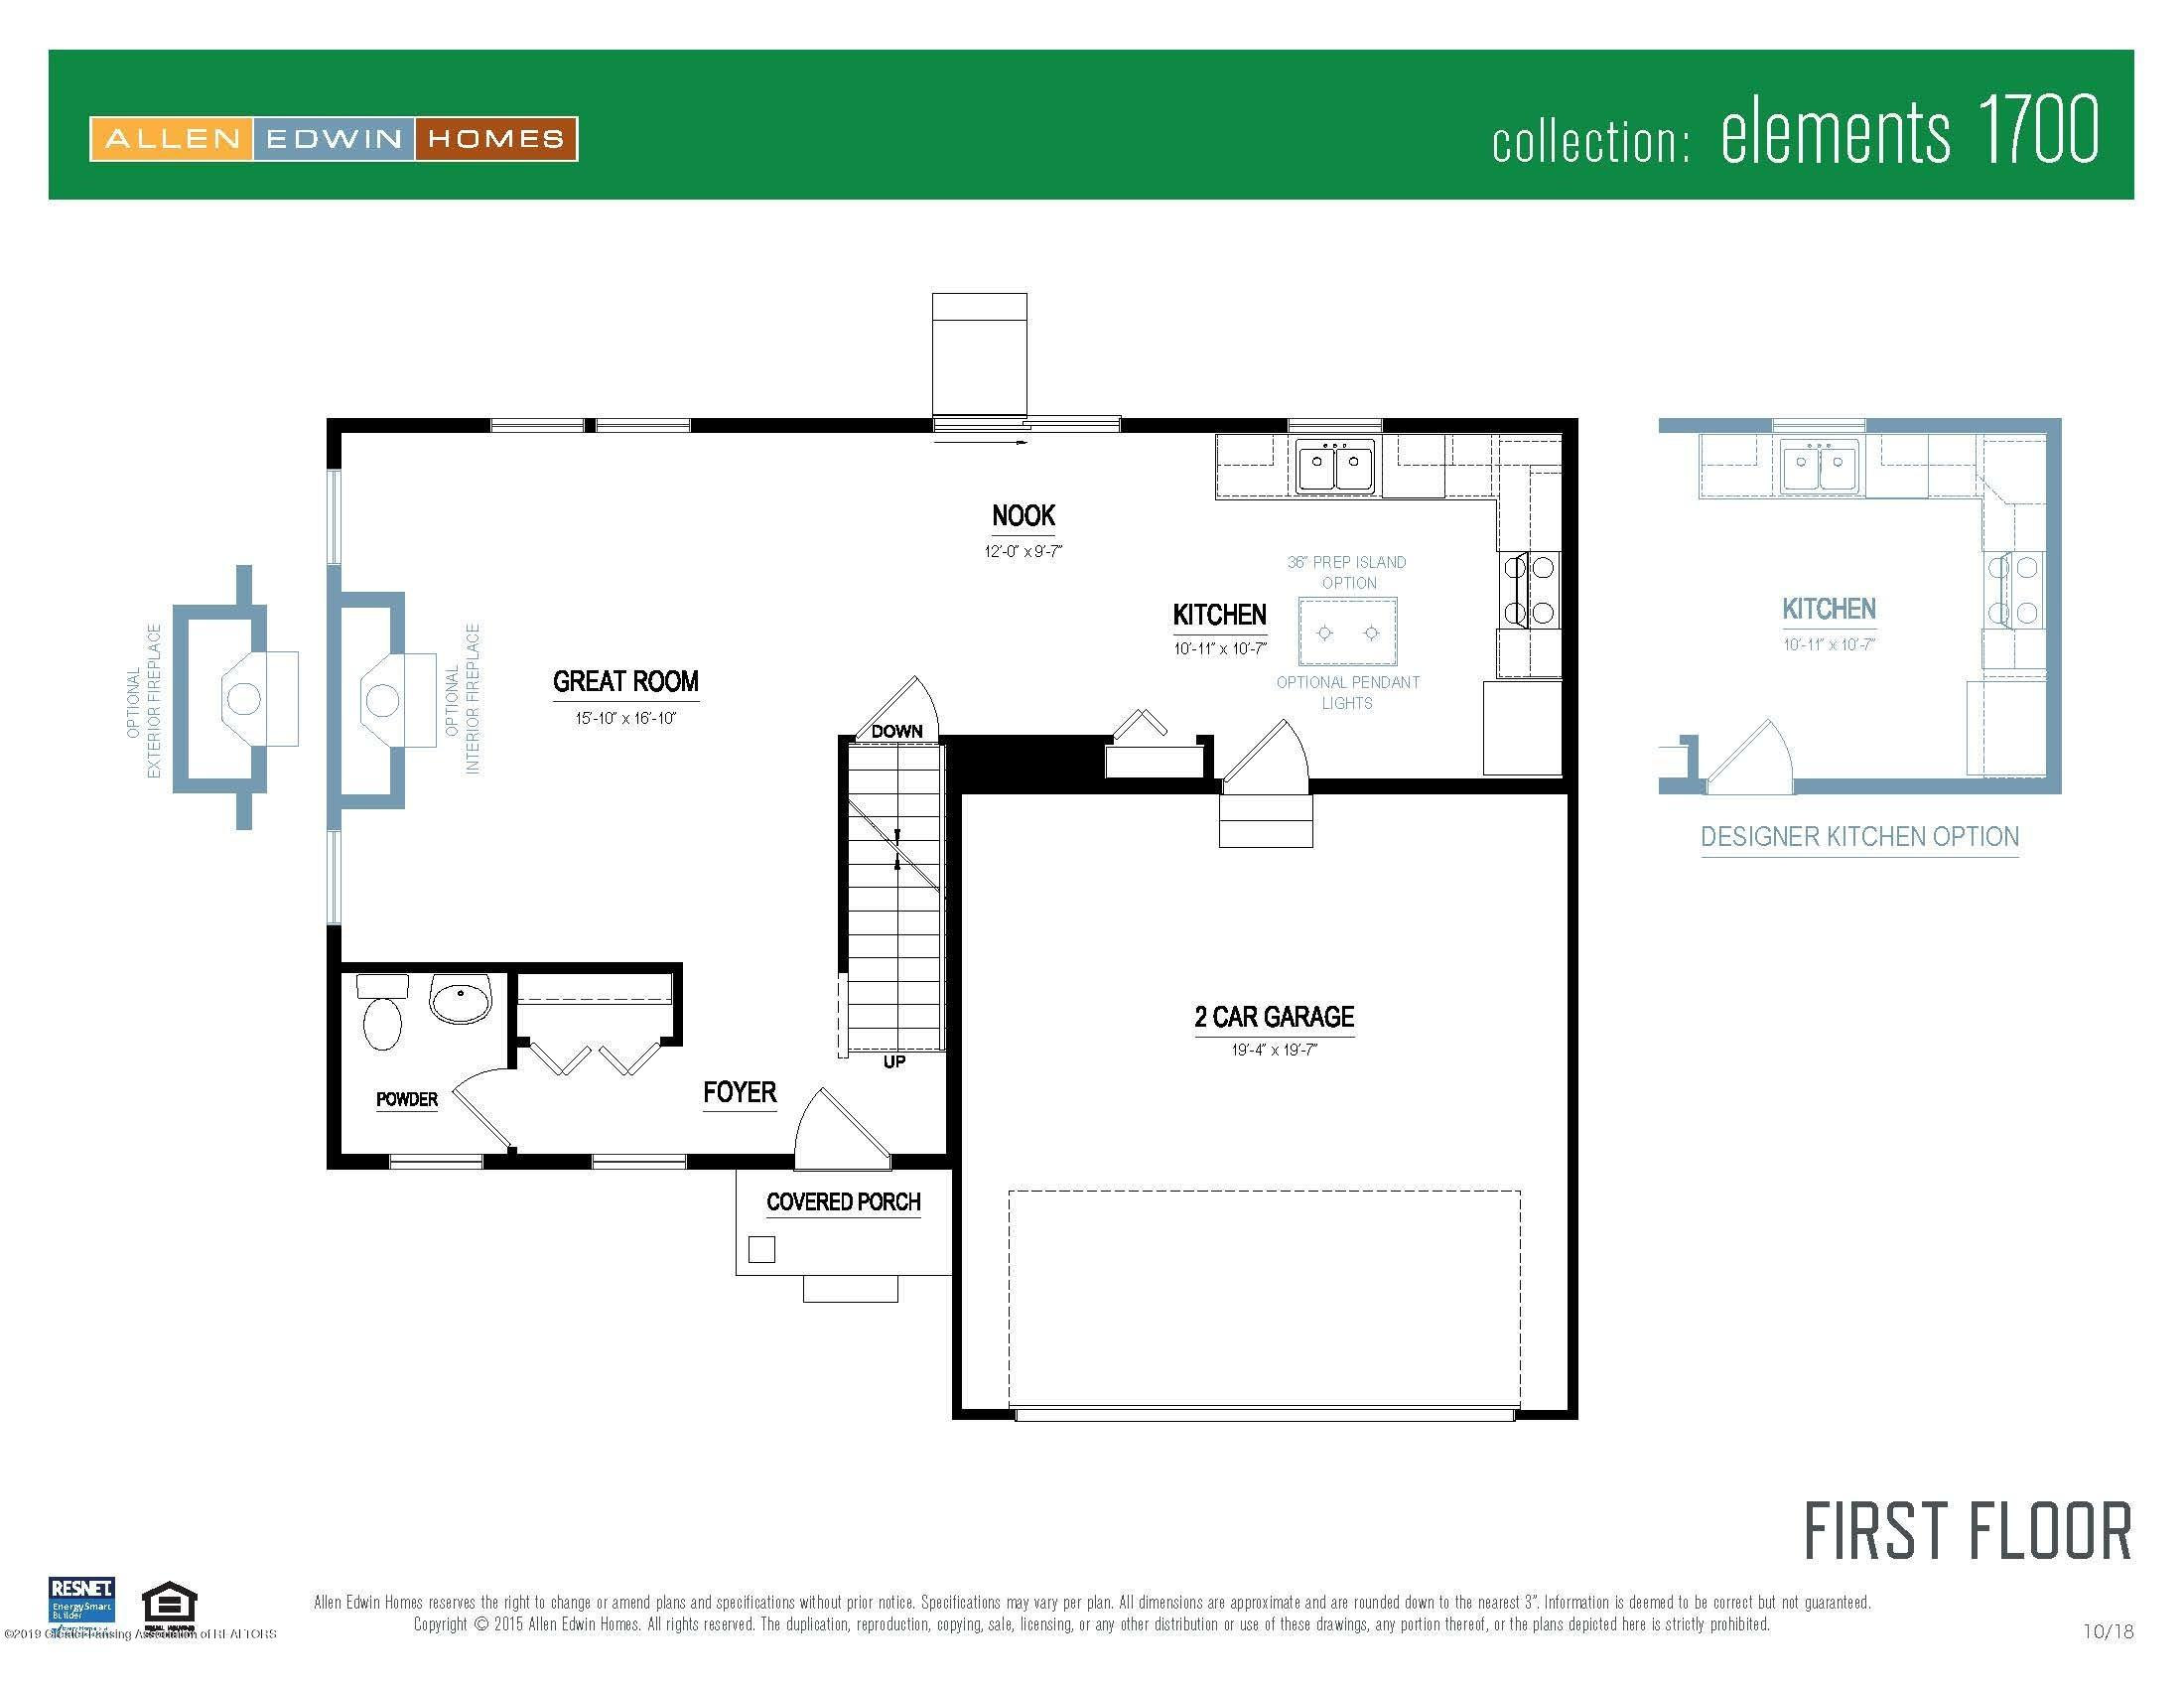 1013 Chesham - Elements 1700 V8.0a First Floor - 2